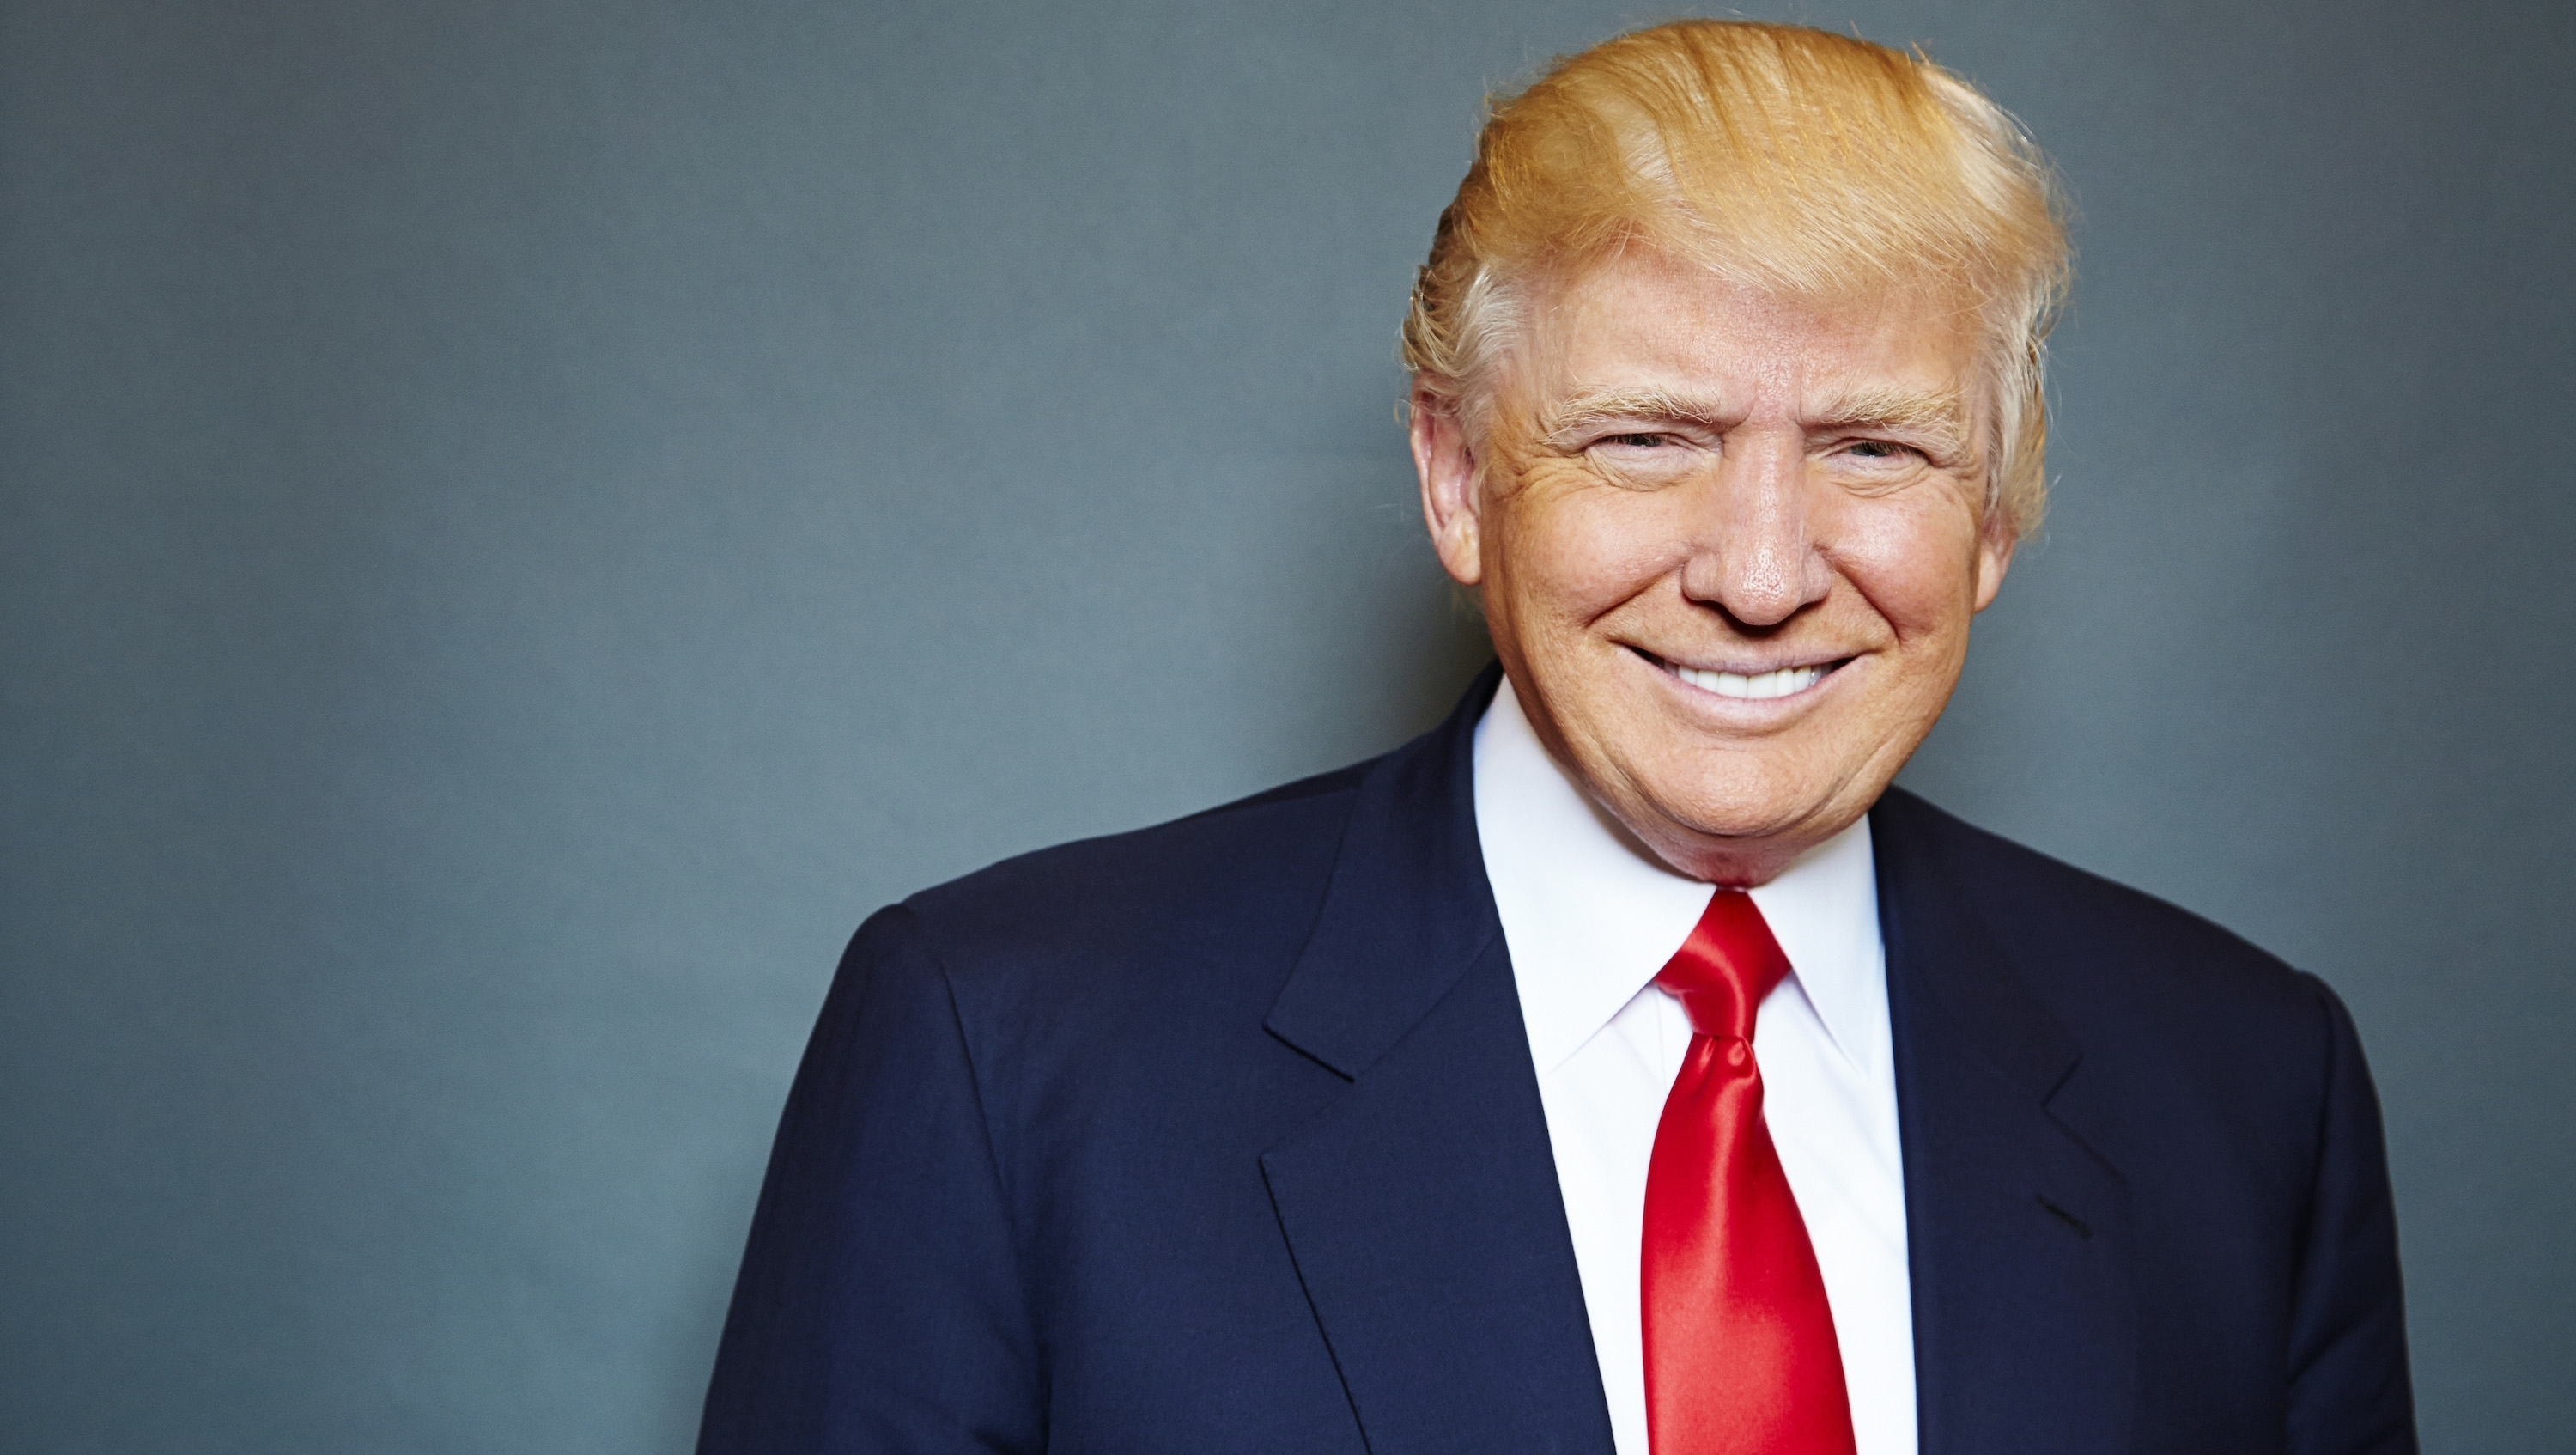 donald trump smile wallpaper 59542 3000x1694 px ~ hdwallsource